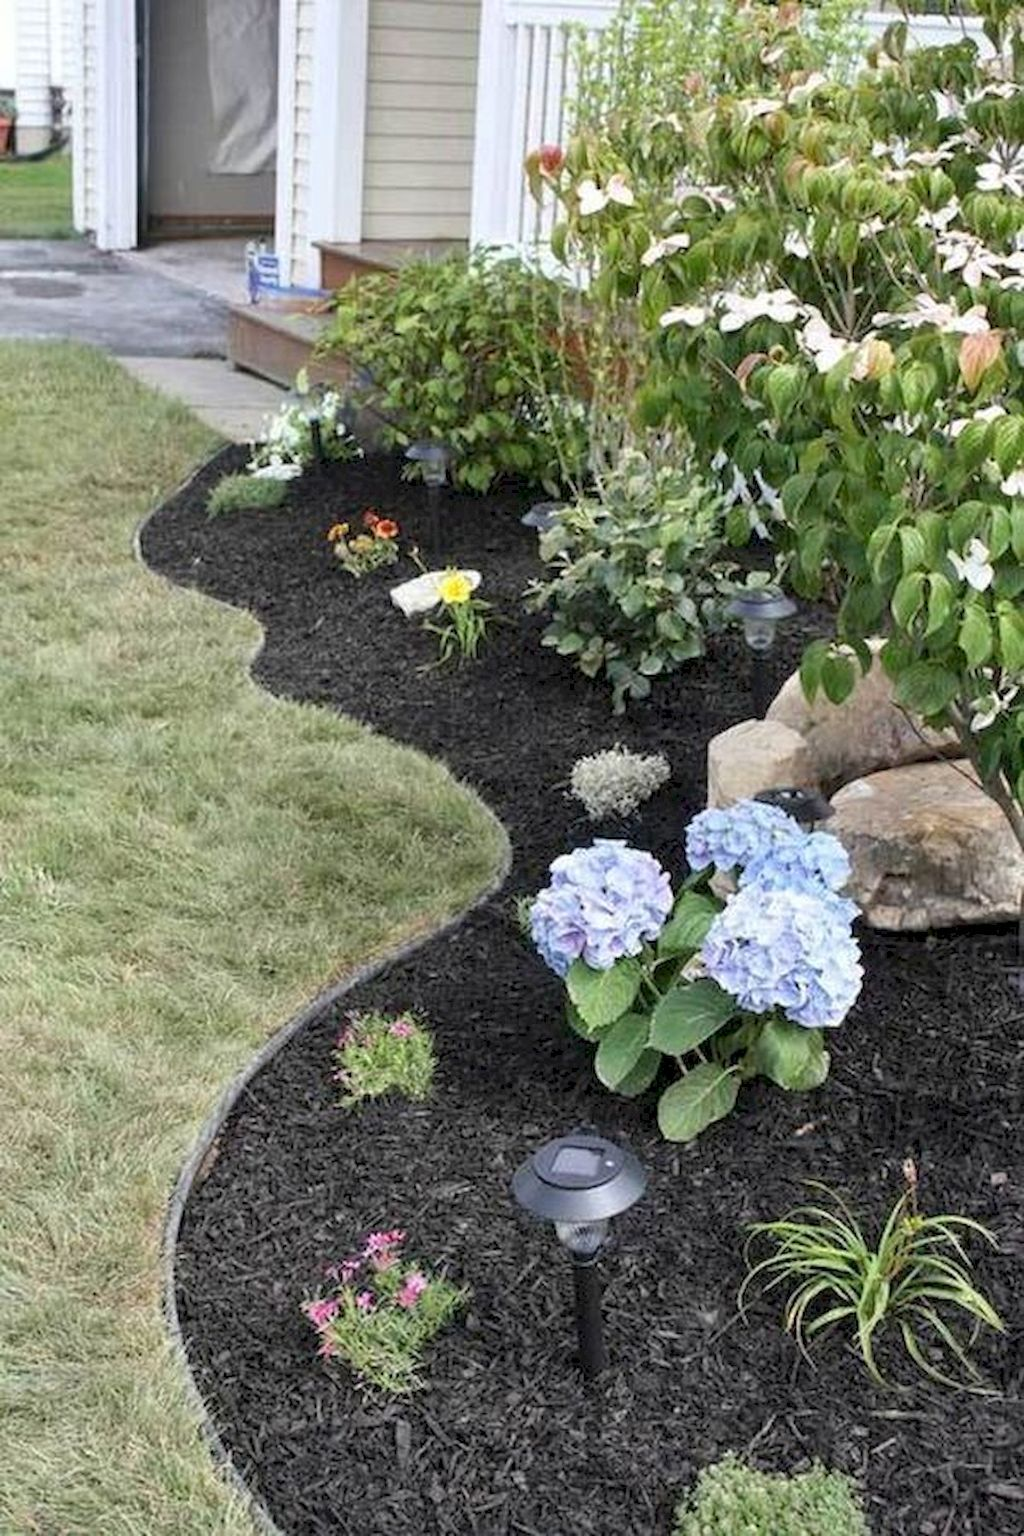 75 Gorgeous Front Yard Garden Landscaping Ideas Small Front Yard Landscaping Front Yard Garden Front Yard Landscaping Design